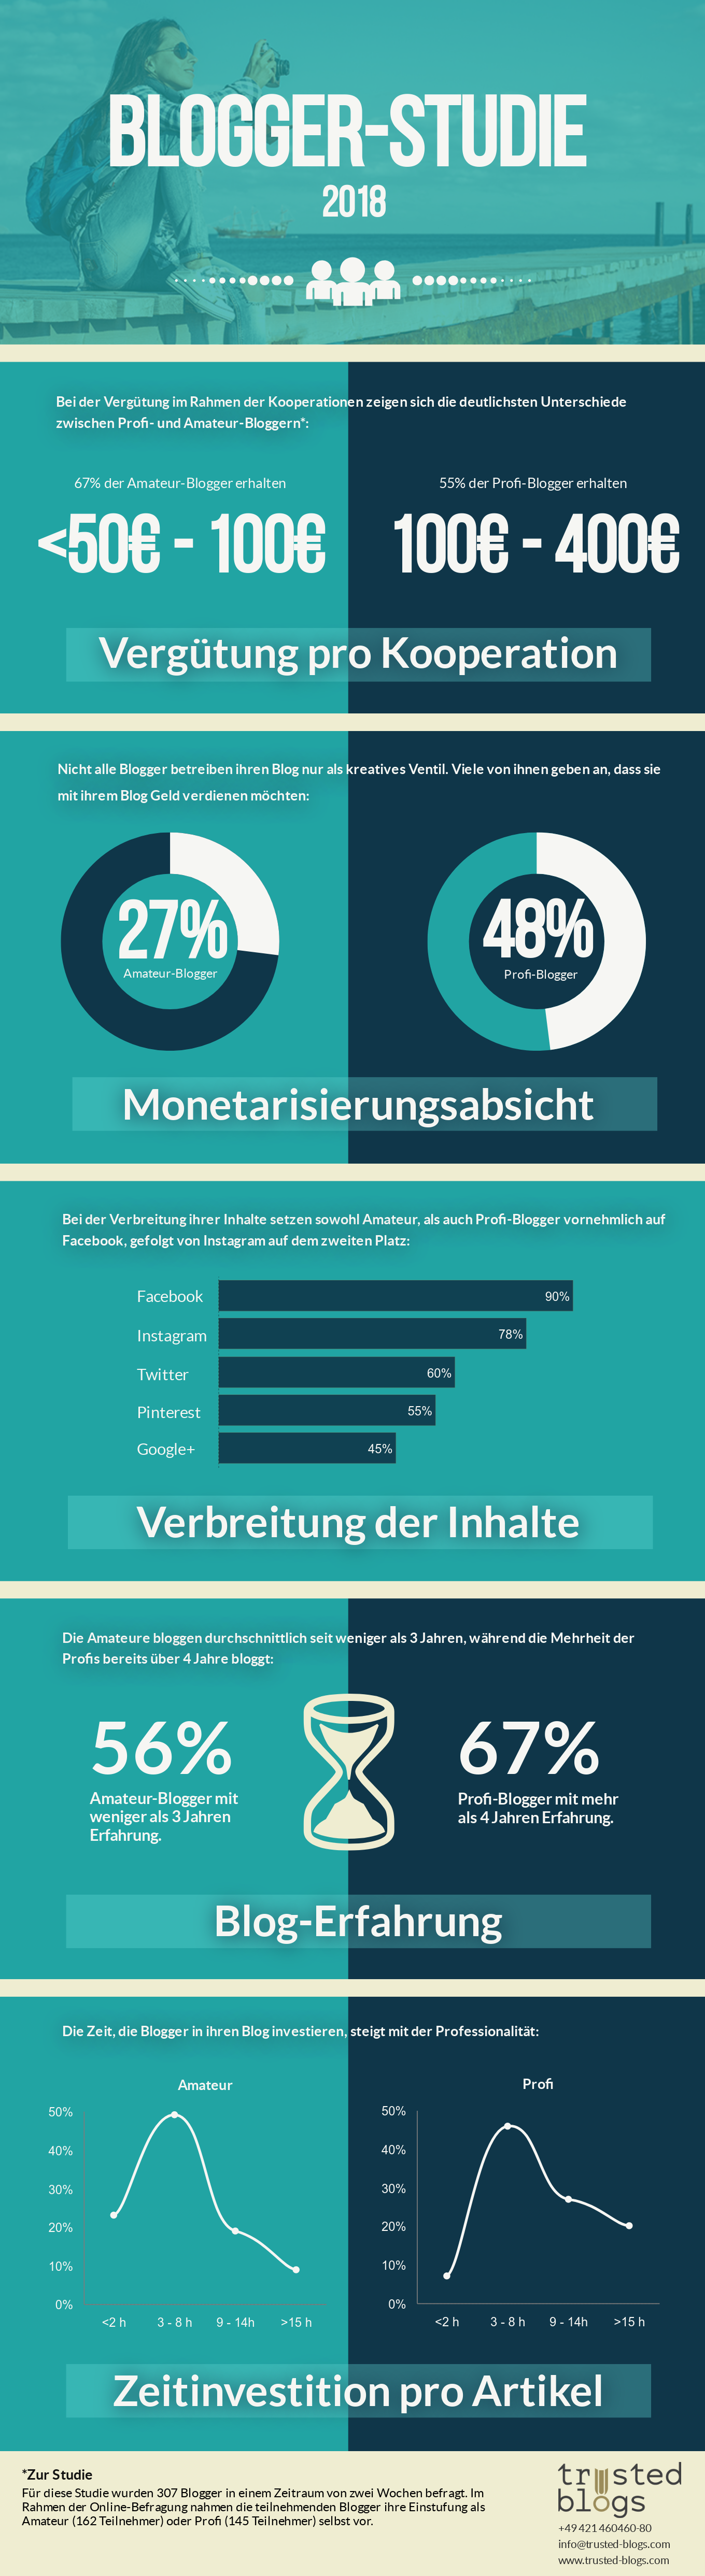 Blogger-Studie-2018-trusted-blogs